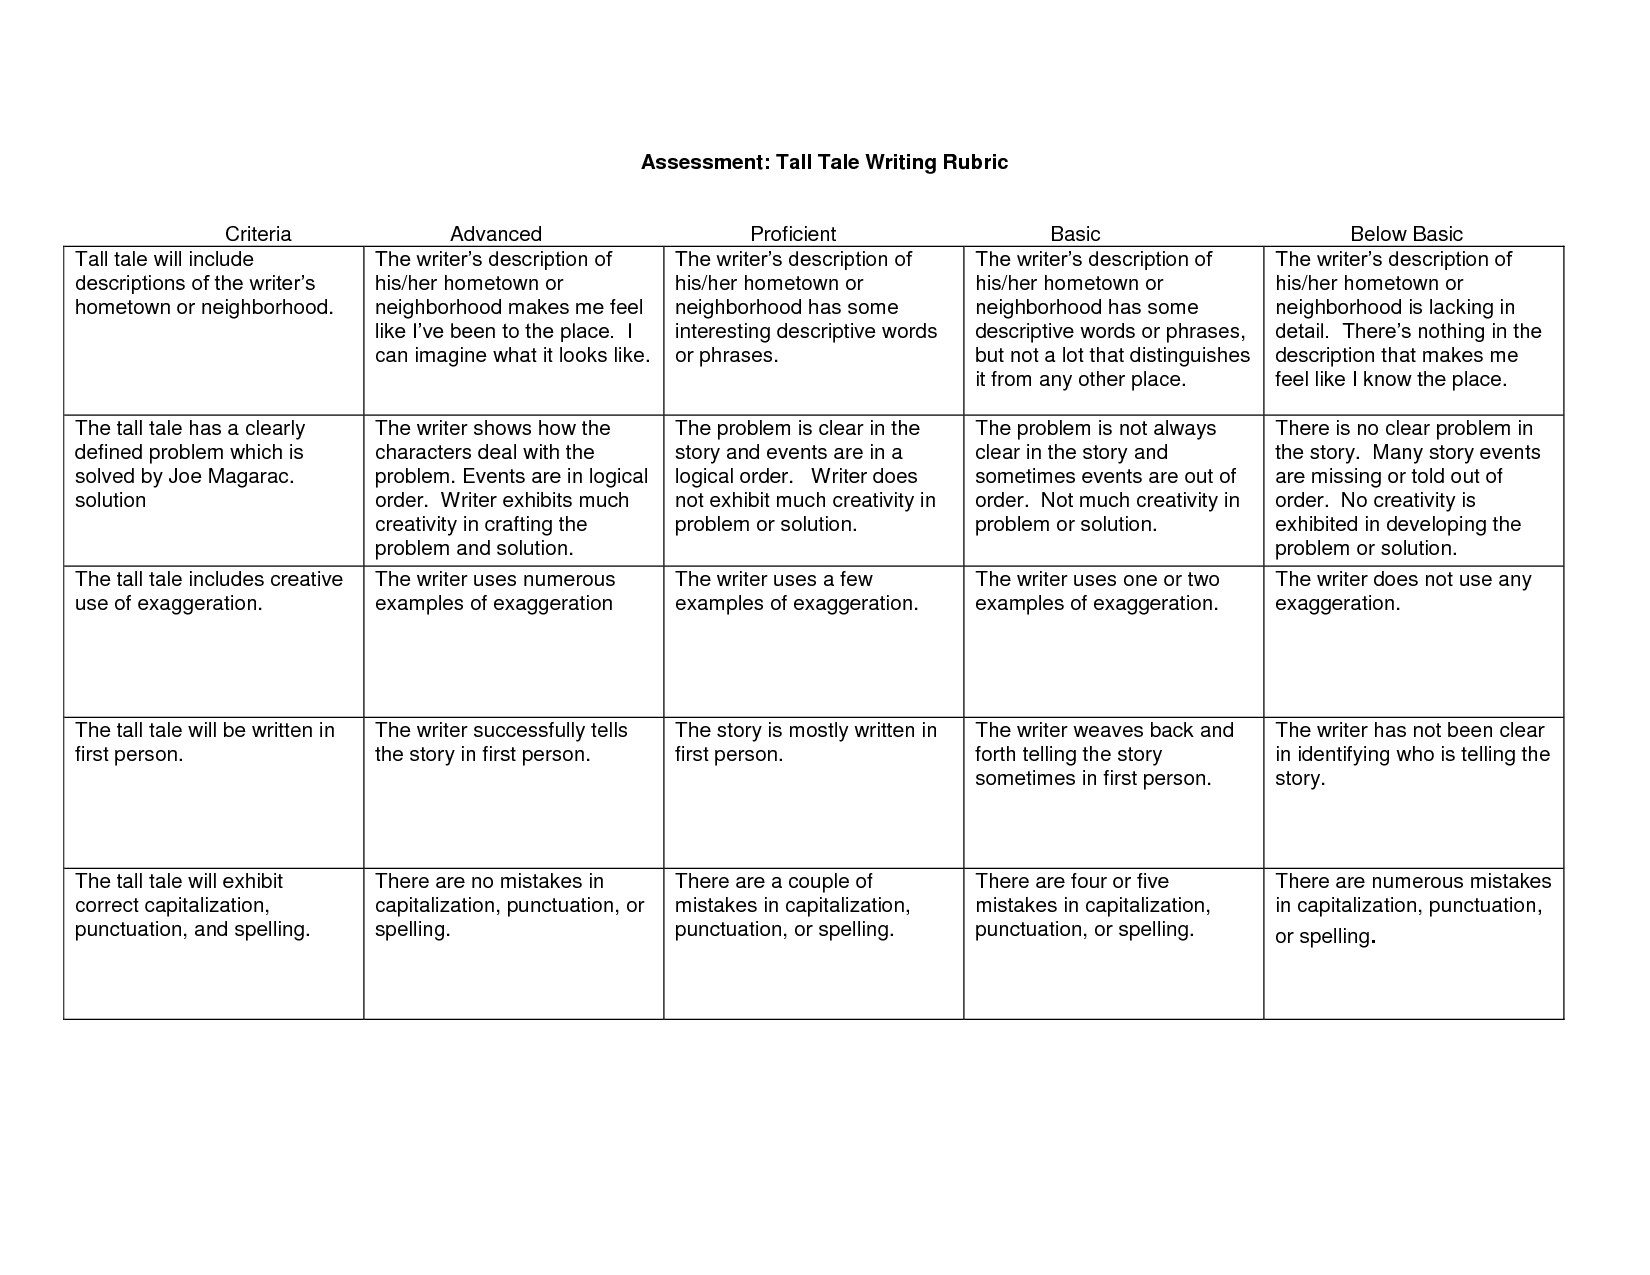 Tall Tale Writing Rubric